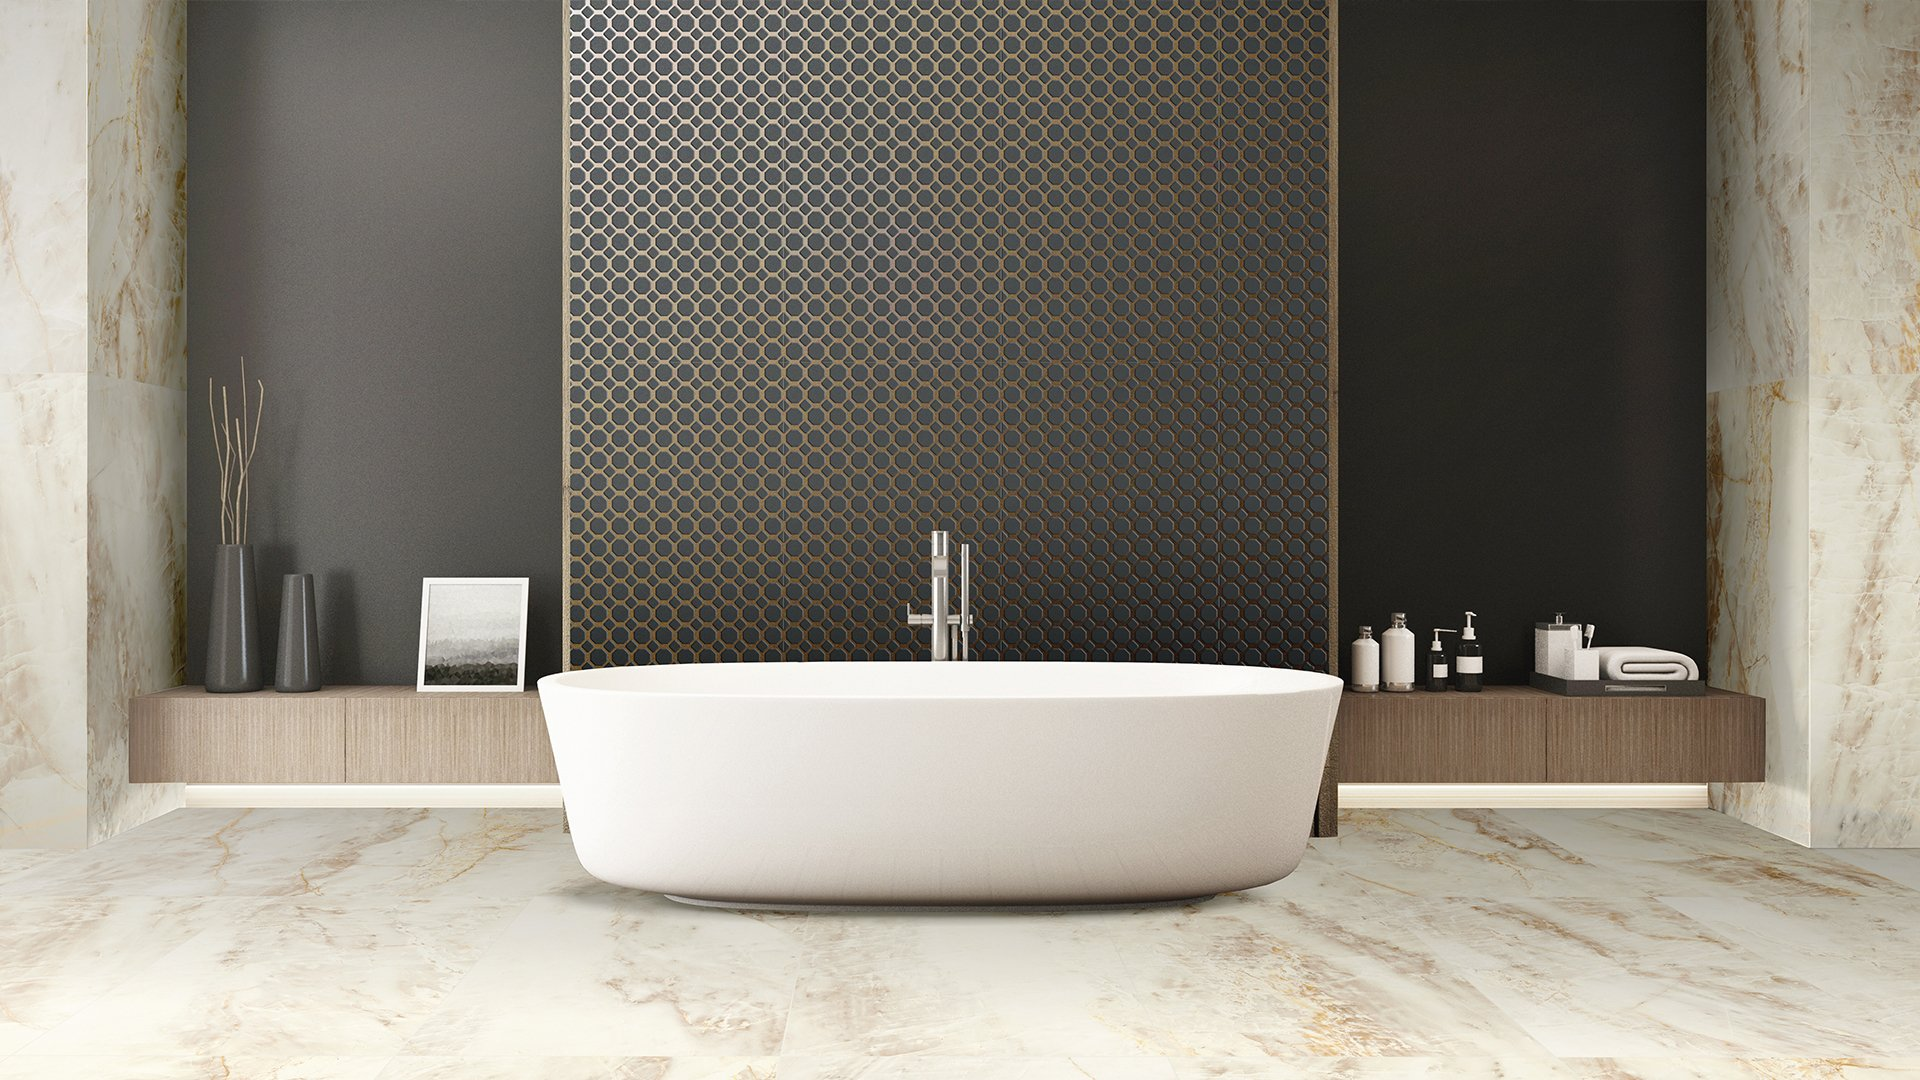 Carlanto Tiles and Bathrooms